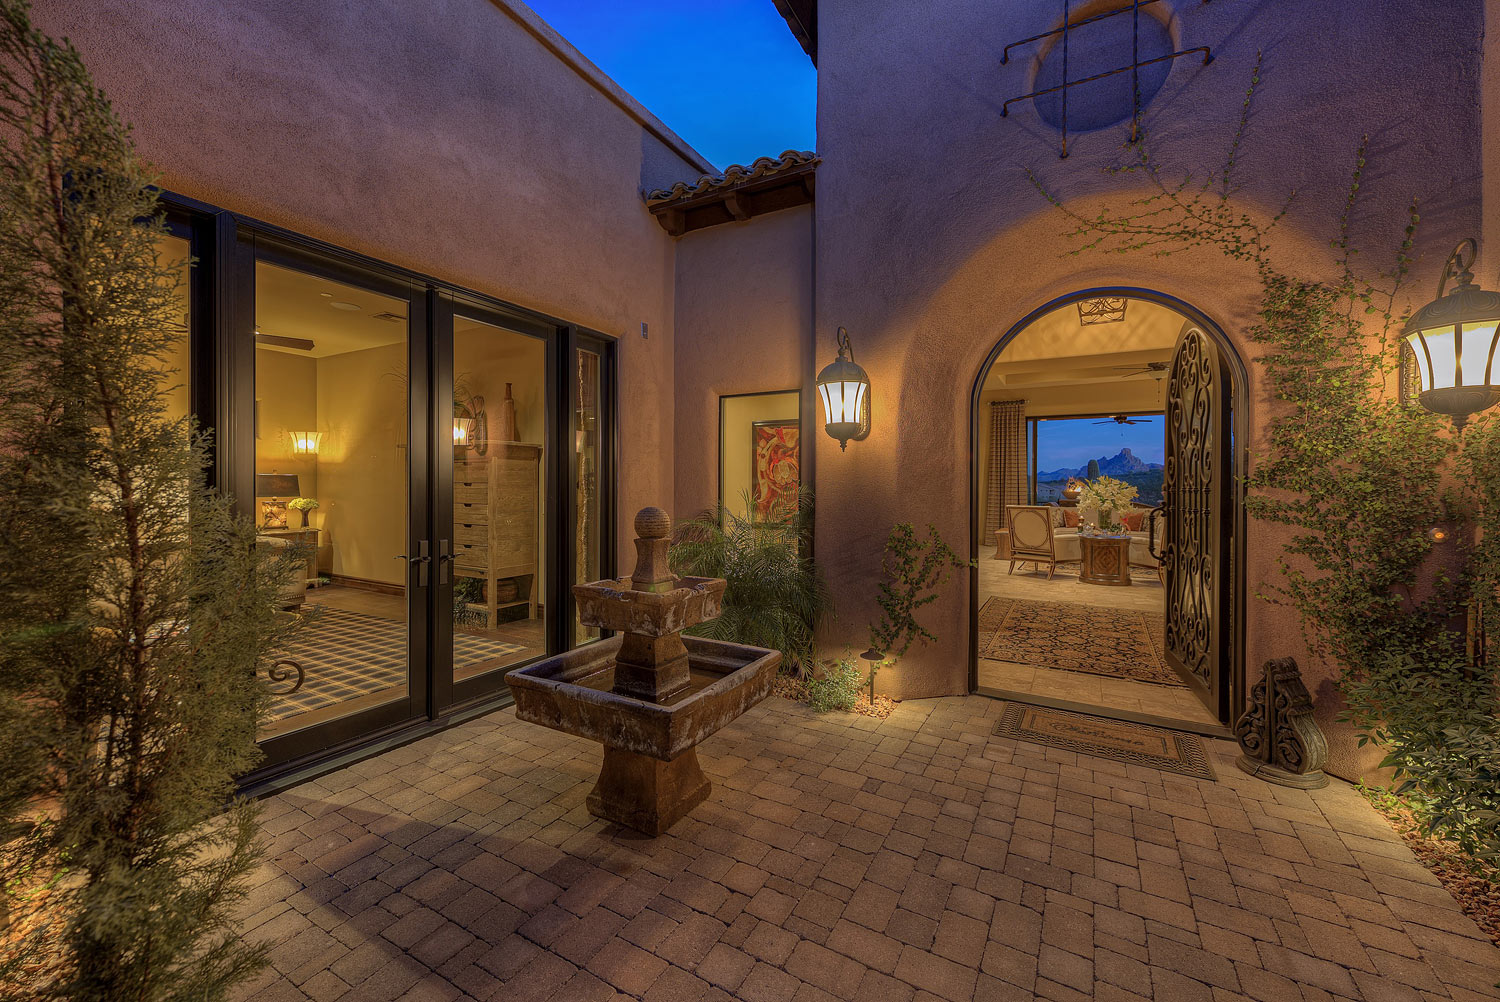 002_Front-Courtyard-and-Entry.jpg